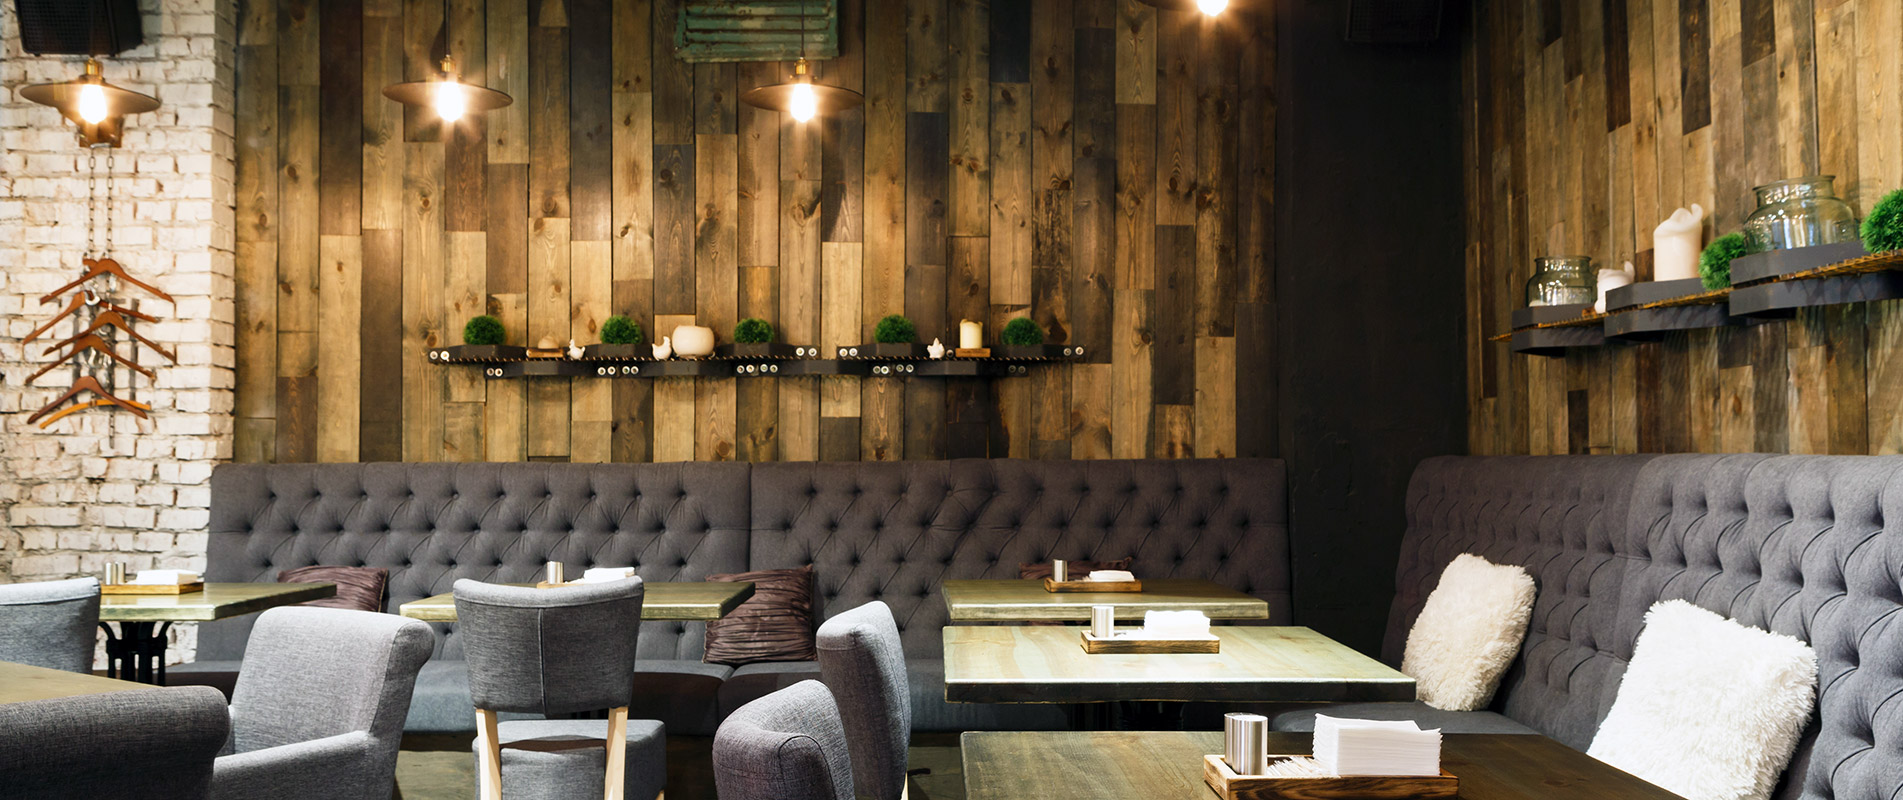 Forbes shop fitting fit-out for Bars, Pubs and Restaurants